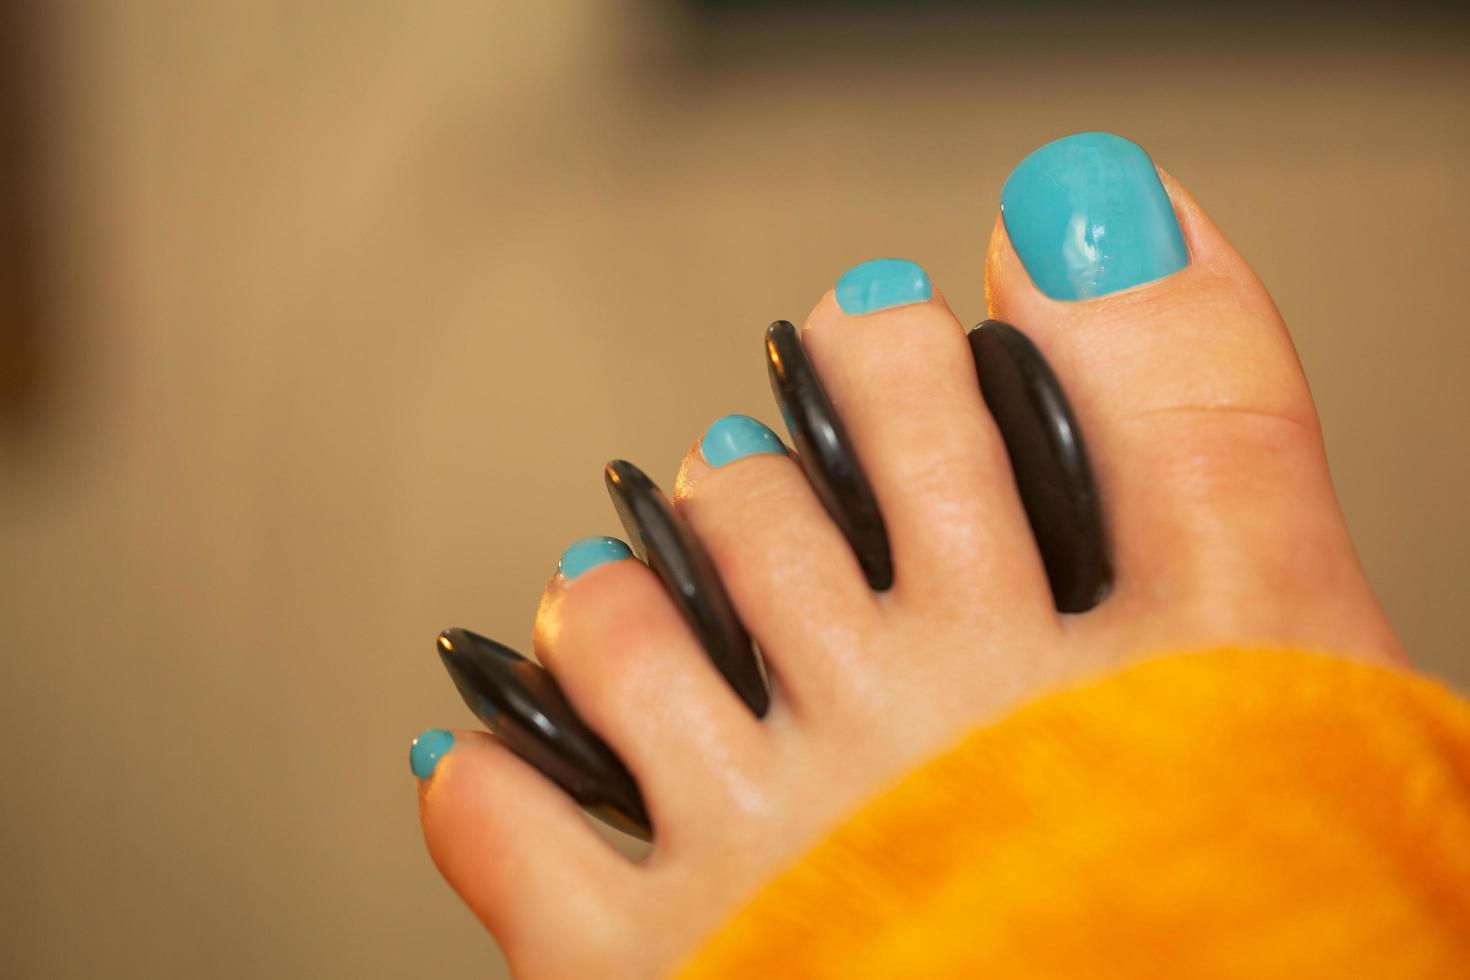 Spa foot treatment with massage stones photo